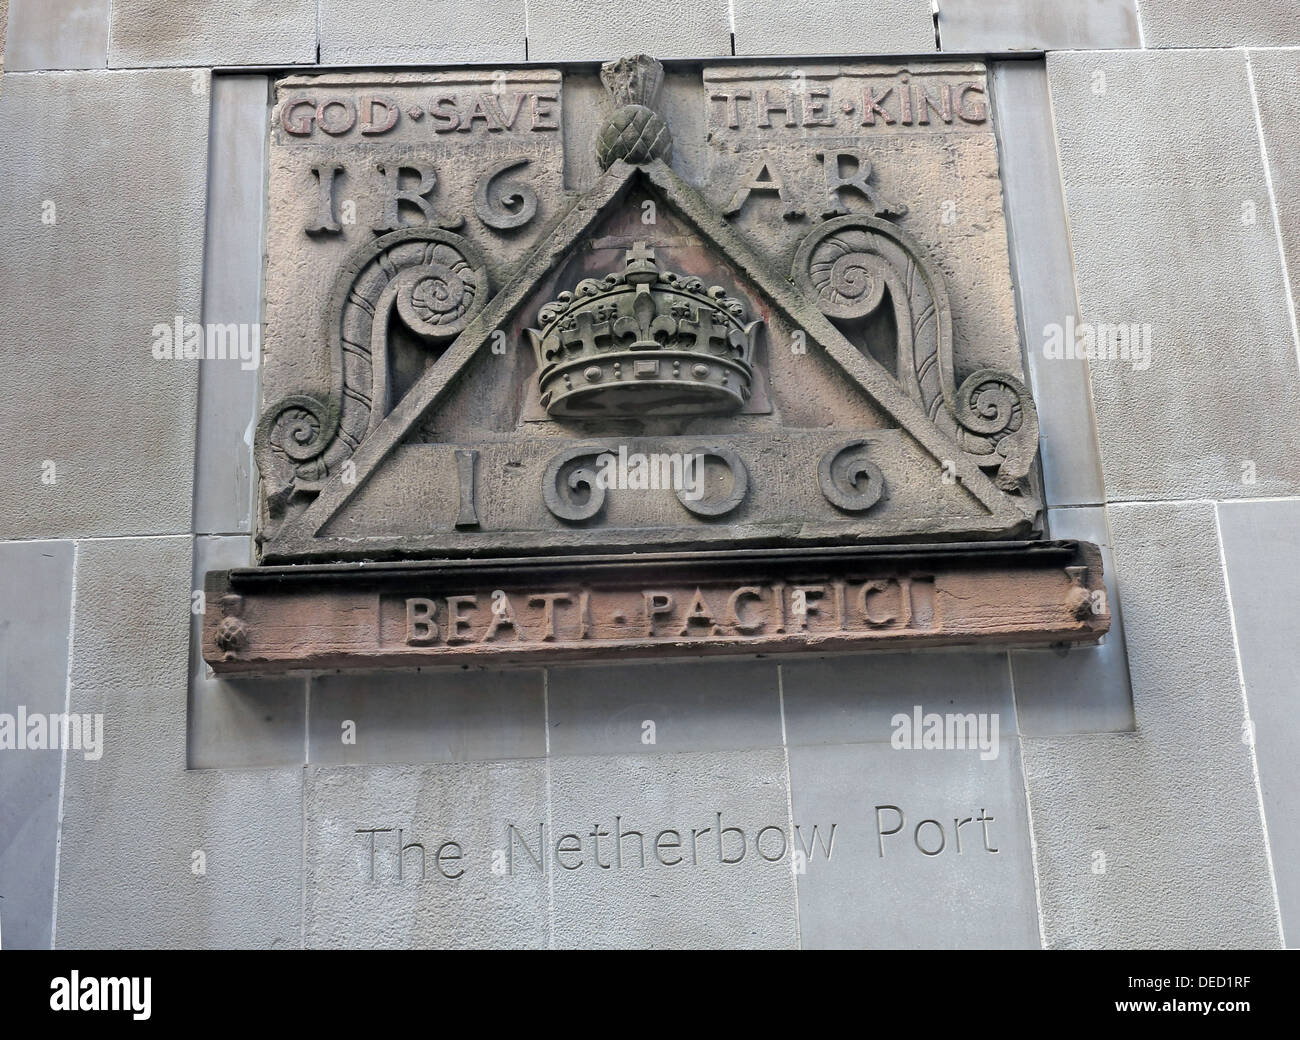 Crest stones indicating the location of the Netherbow Port Canongate Royalmile Edinburgh Scotland UK Stock Photo